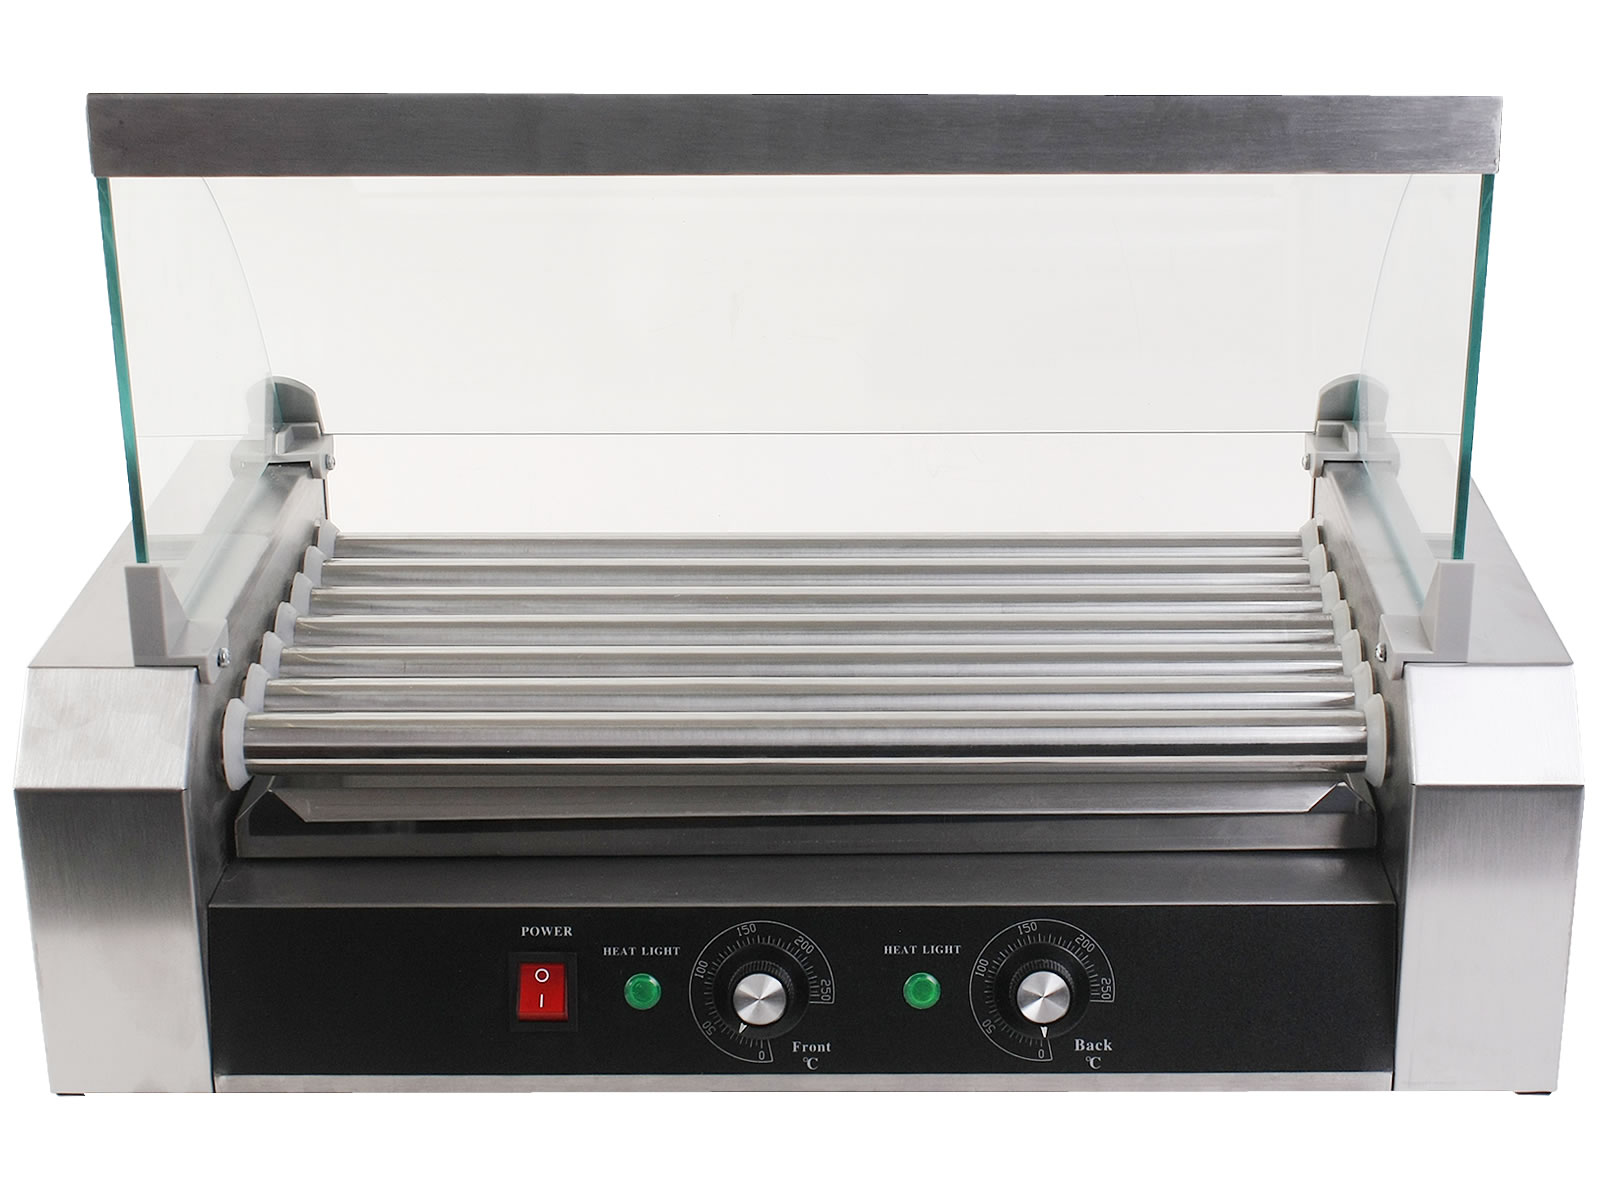 Costway Commercial 18 30 Hot Dog Hotdog 7 11 Roller Grill Cooker Machine W Cover